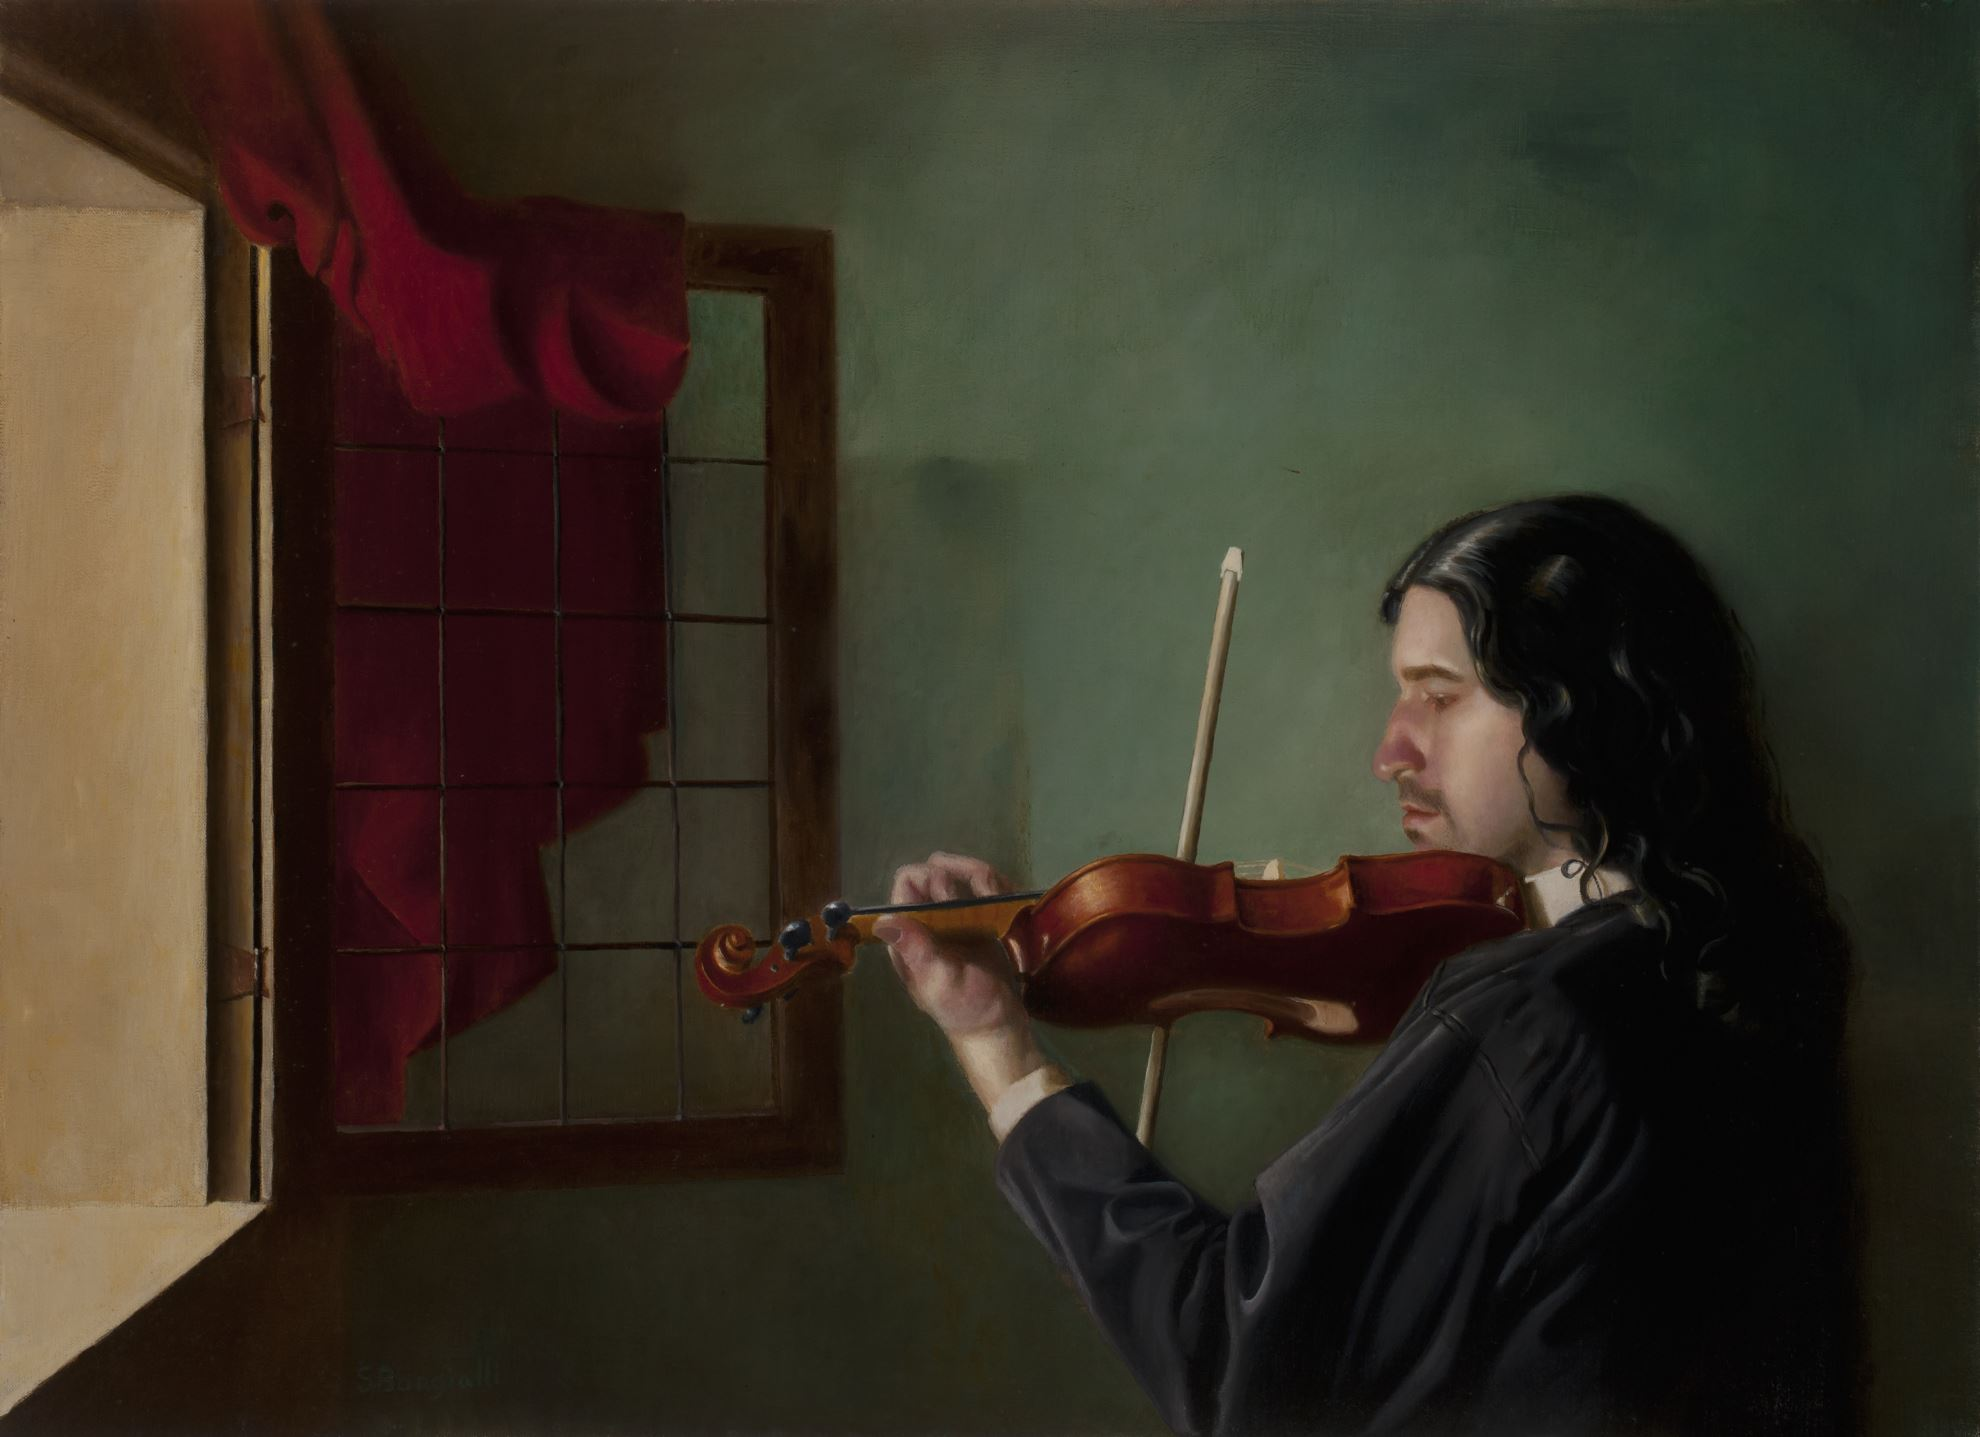 THE MUSICIAN, 44 X 32